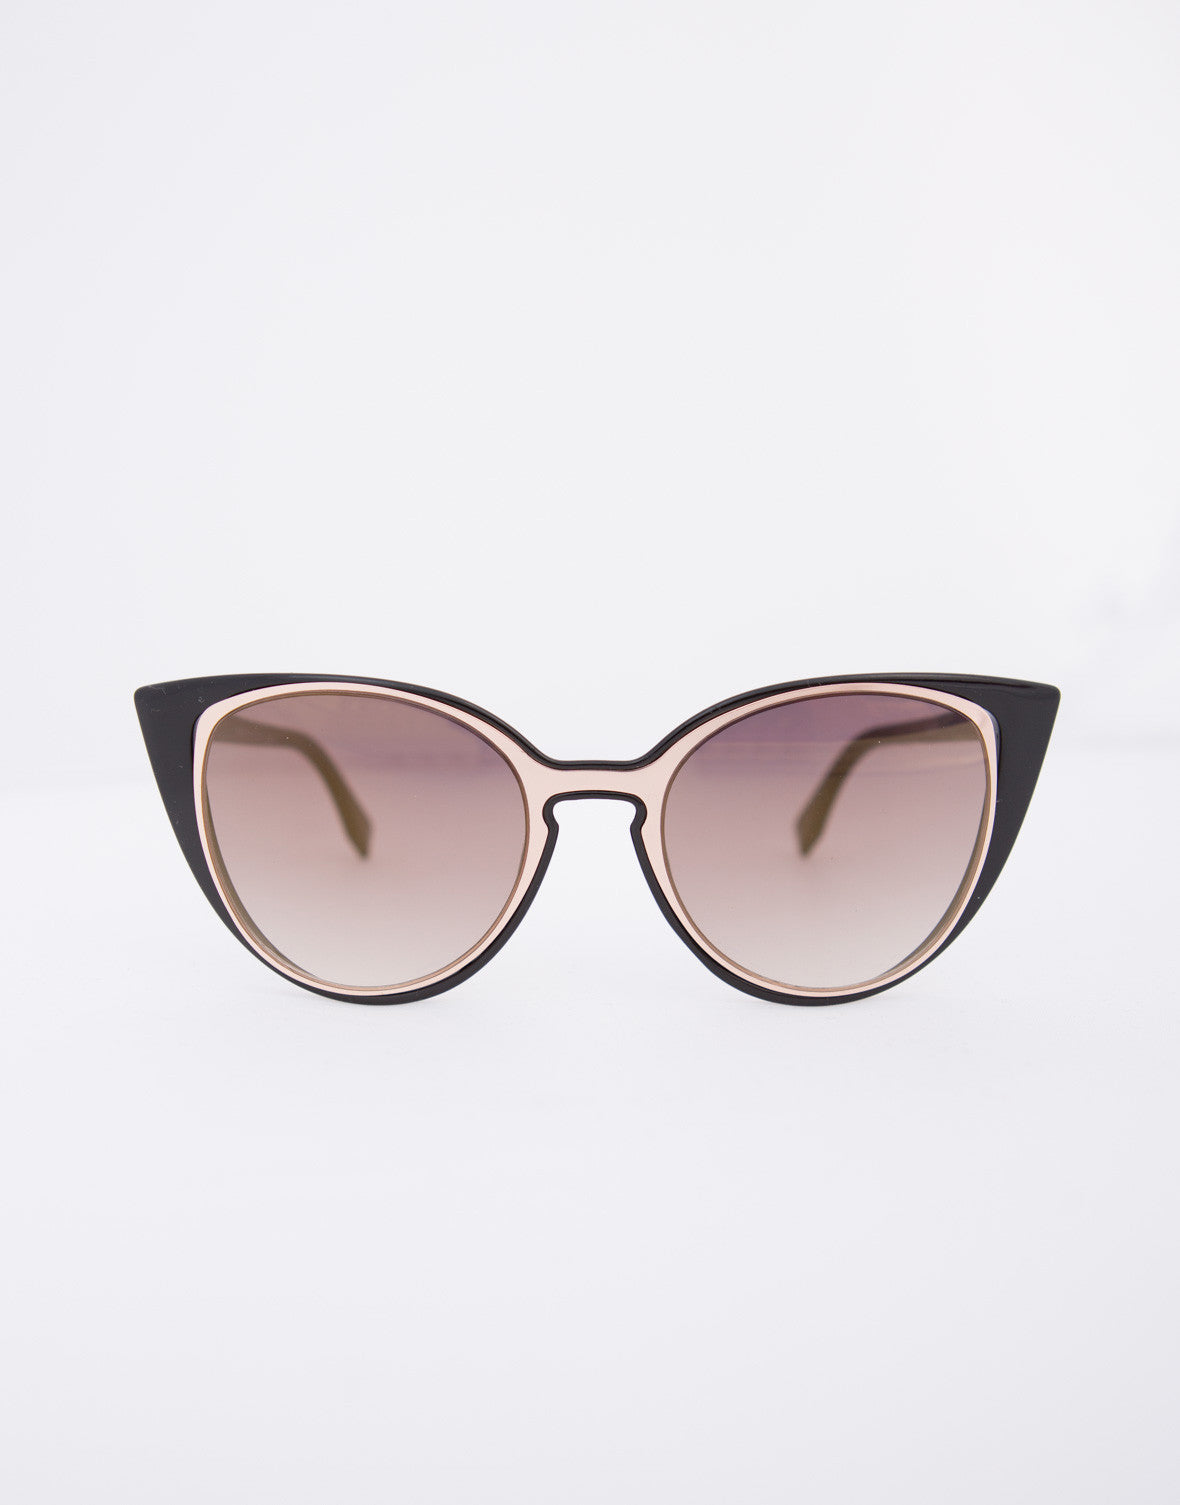 Double Frame Cat Eye Sunglasses - Mirrored Cat Eye Sunnies – 2020AVE